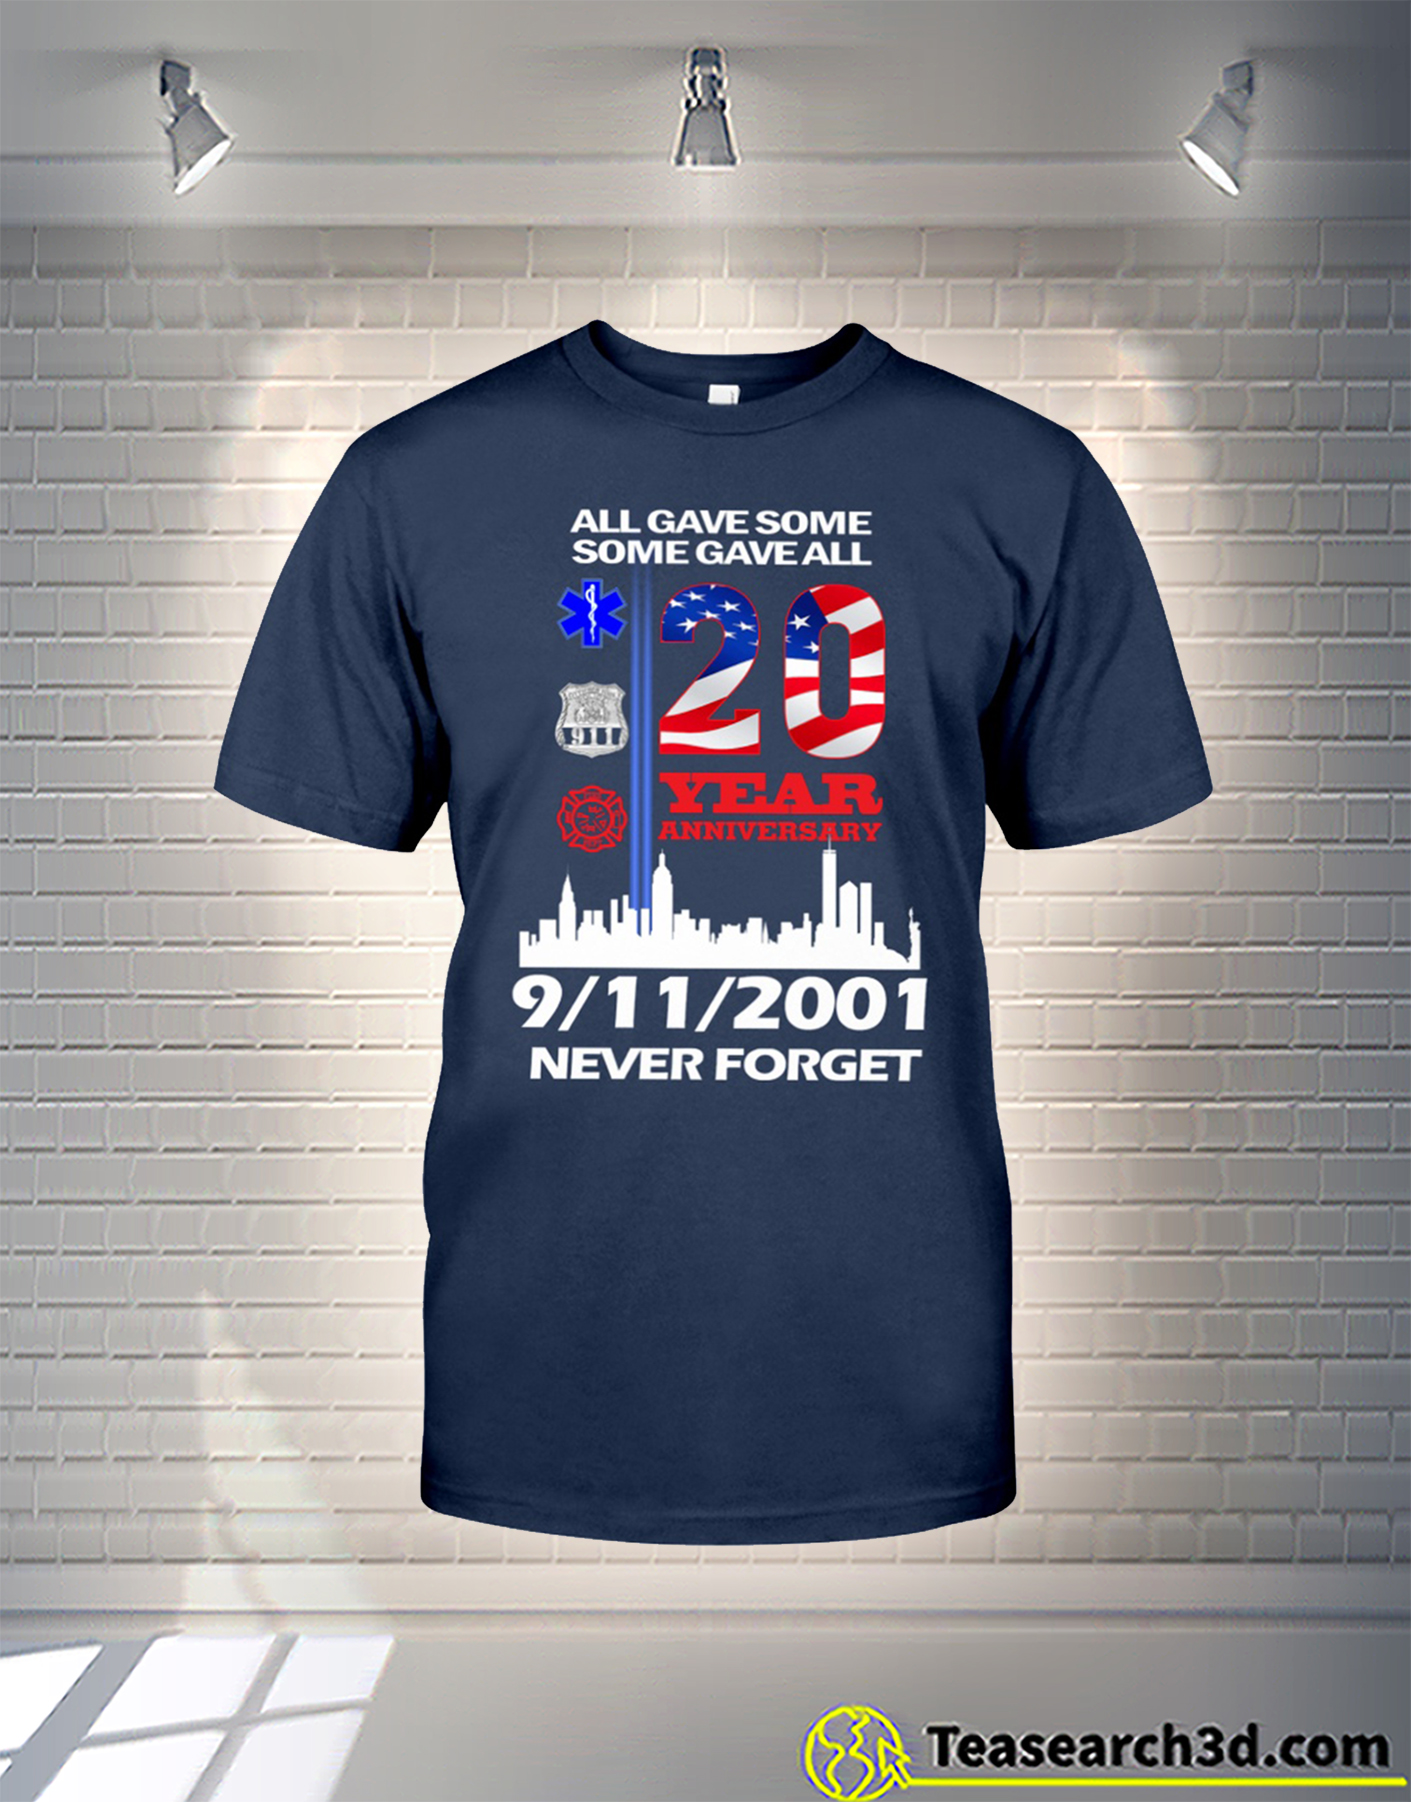 United States All gave some some gave all 20 year anniversary 9-11-2001 never forget t-shirt